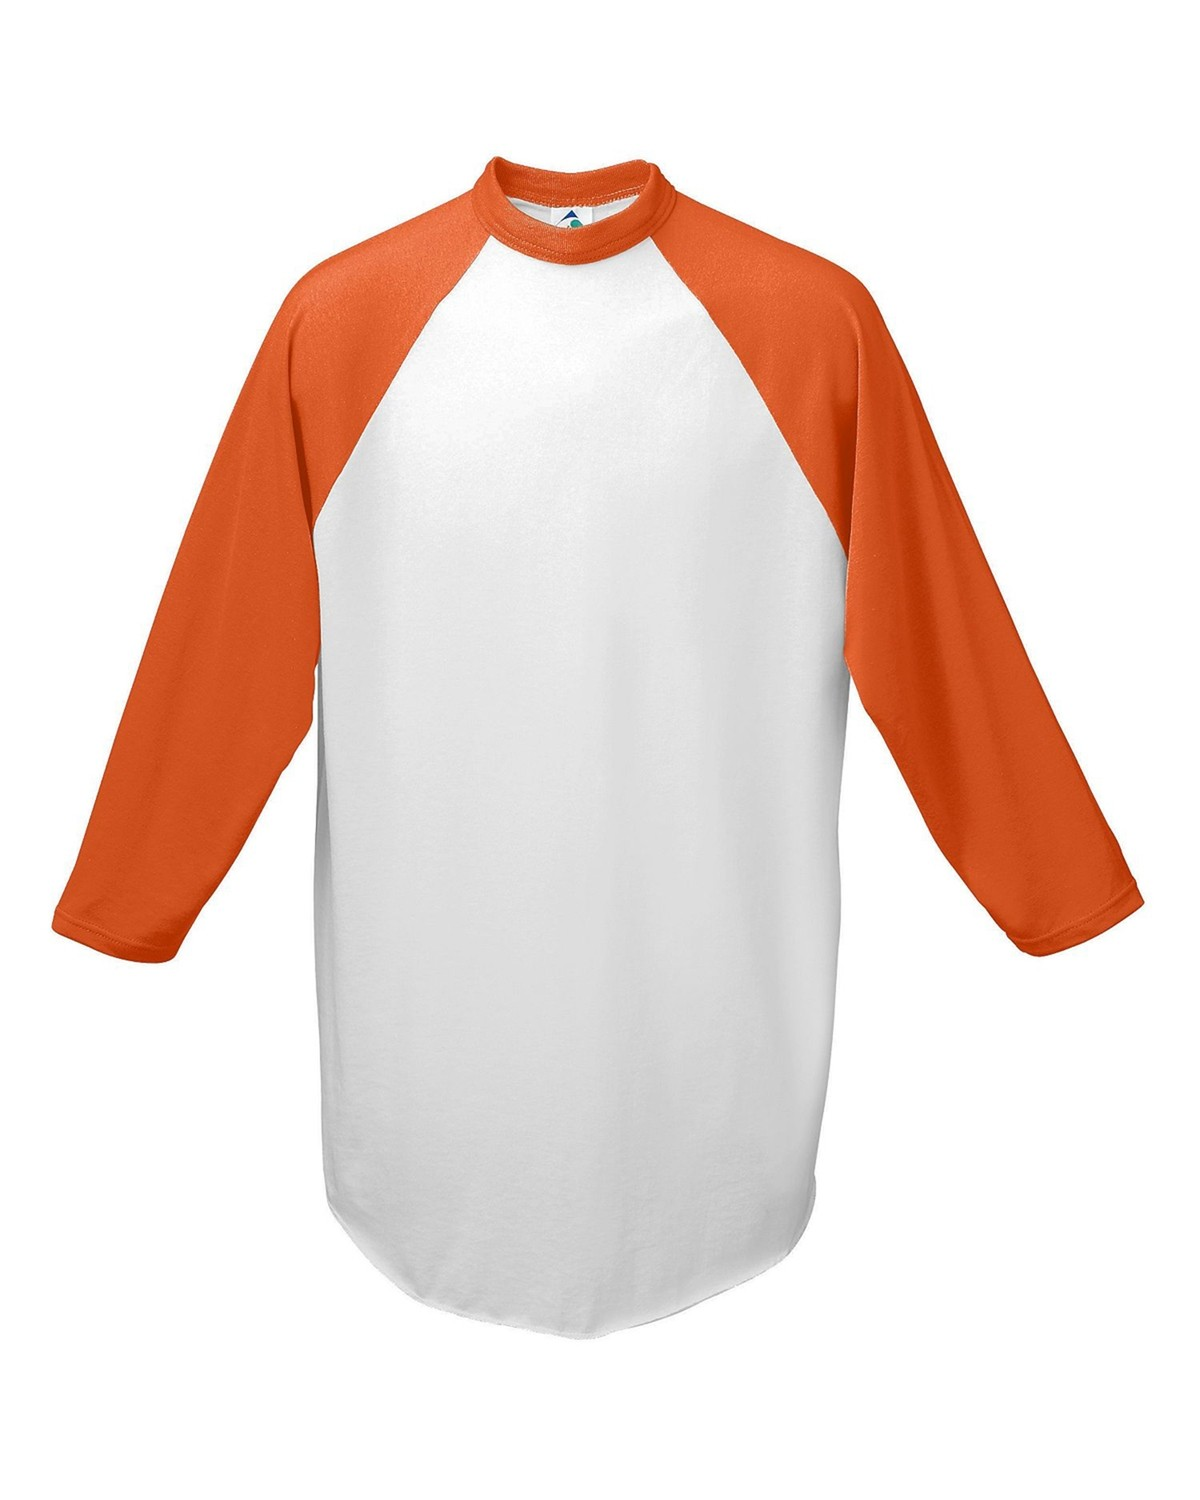 AG4420 Augusta Sportswear WHITE/ORANGE